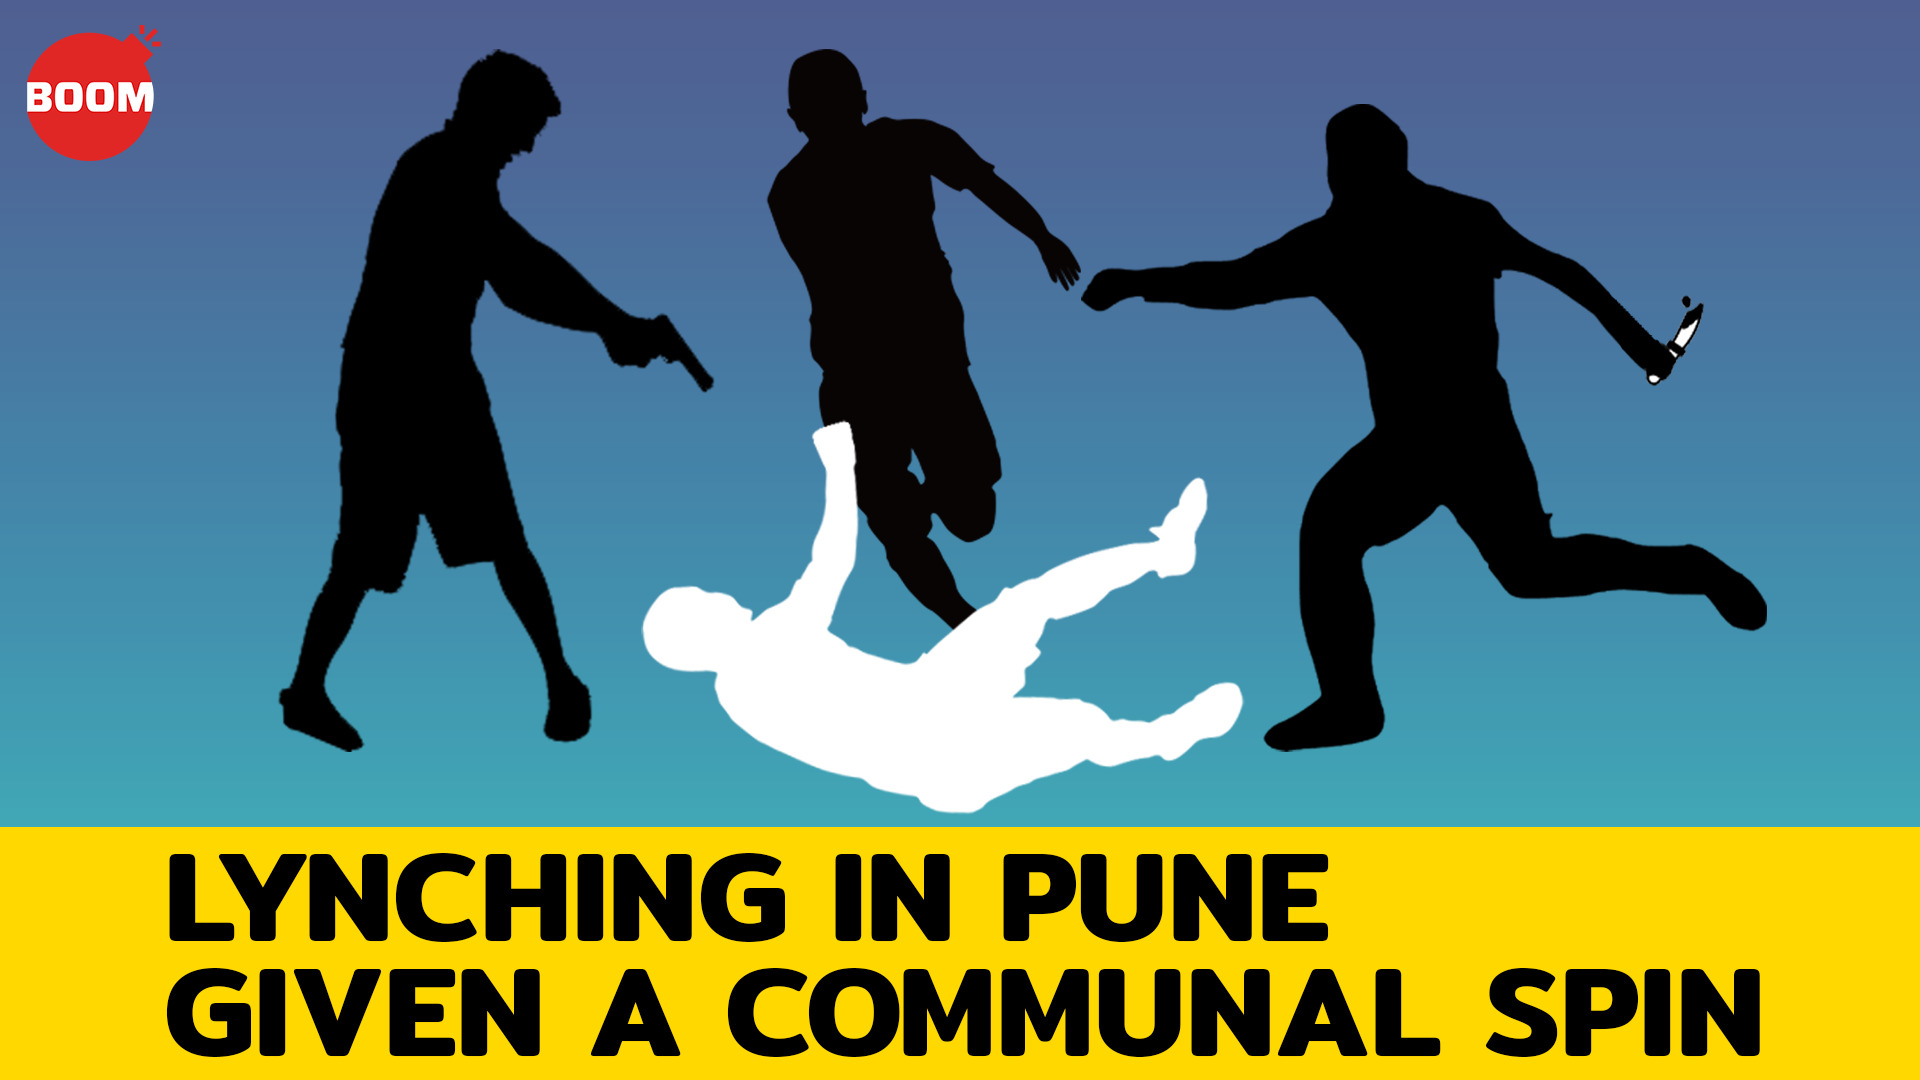 Lynching In Pune Given A Communal Spin